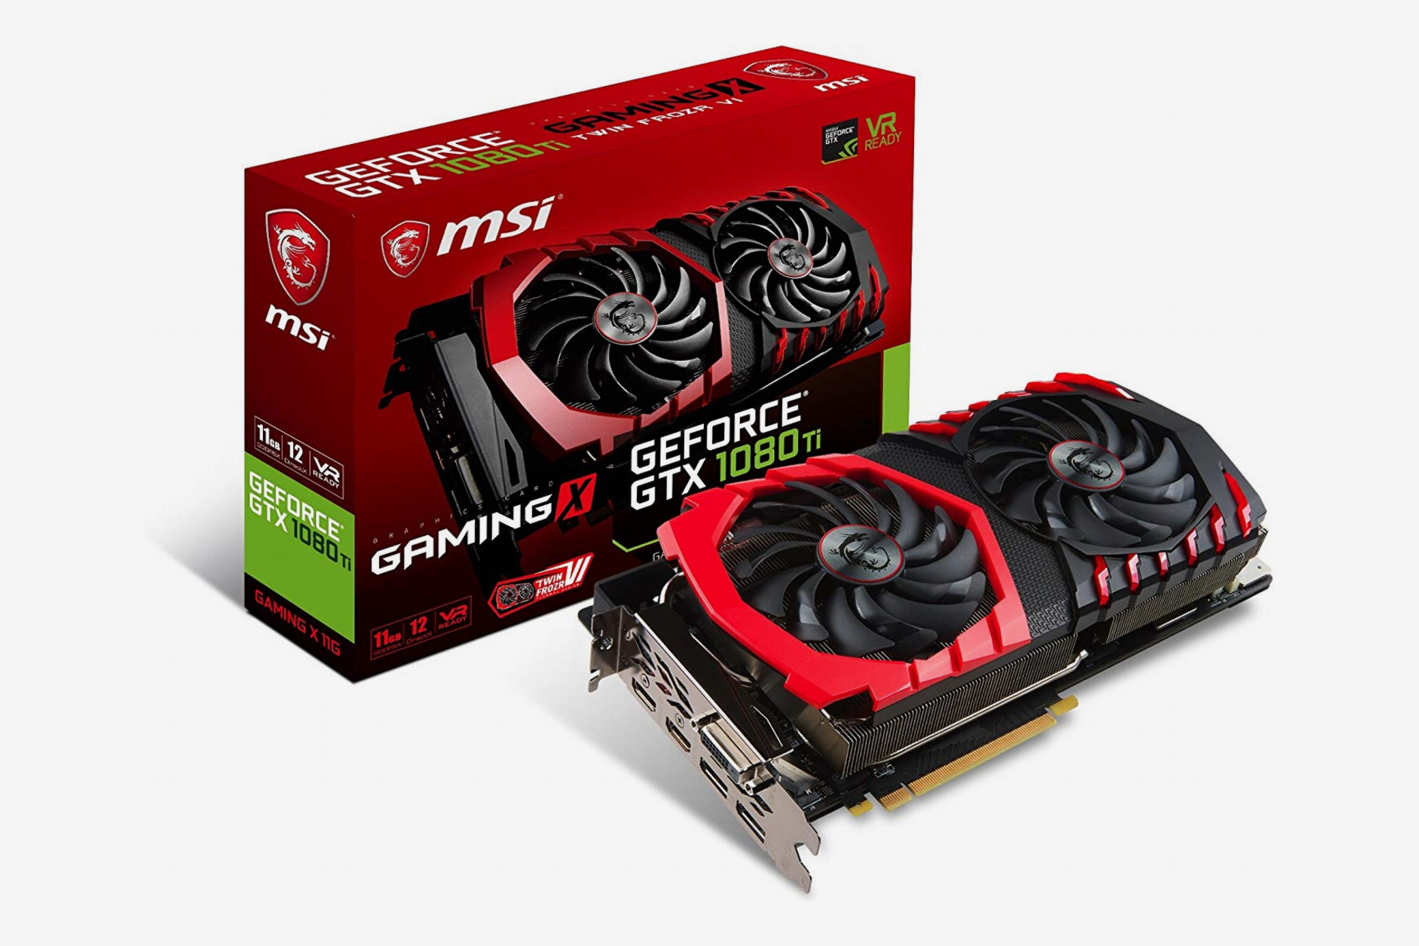 MSI Gaming GeFroce GTX 1080 11GB Graphics Card